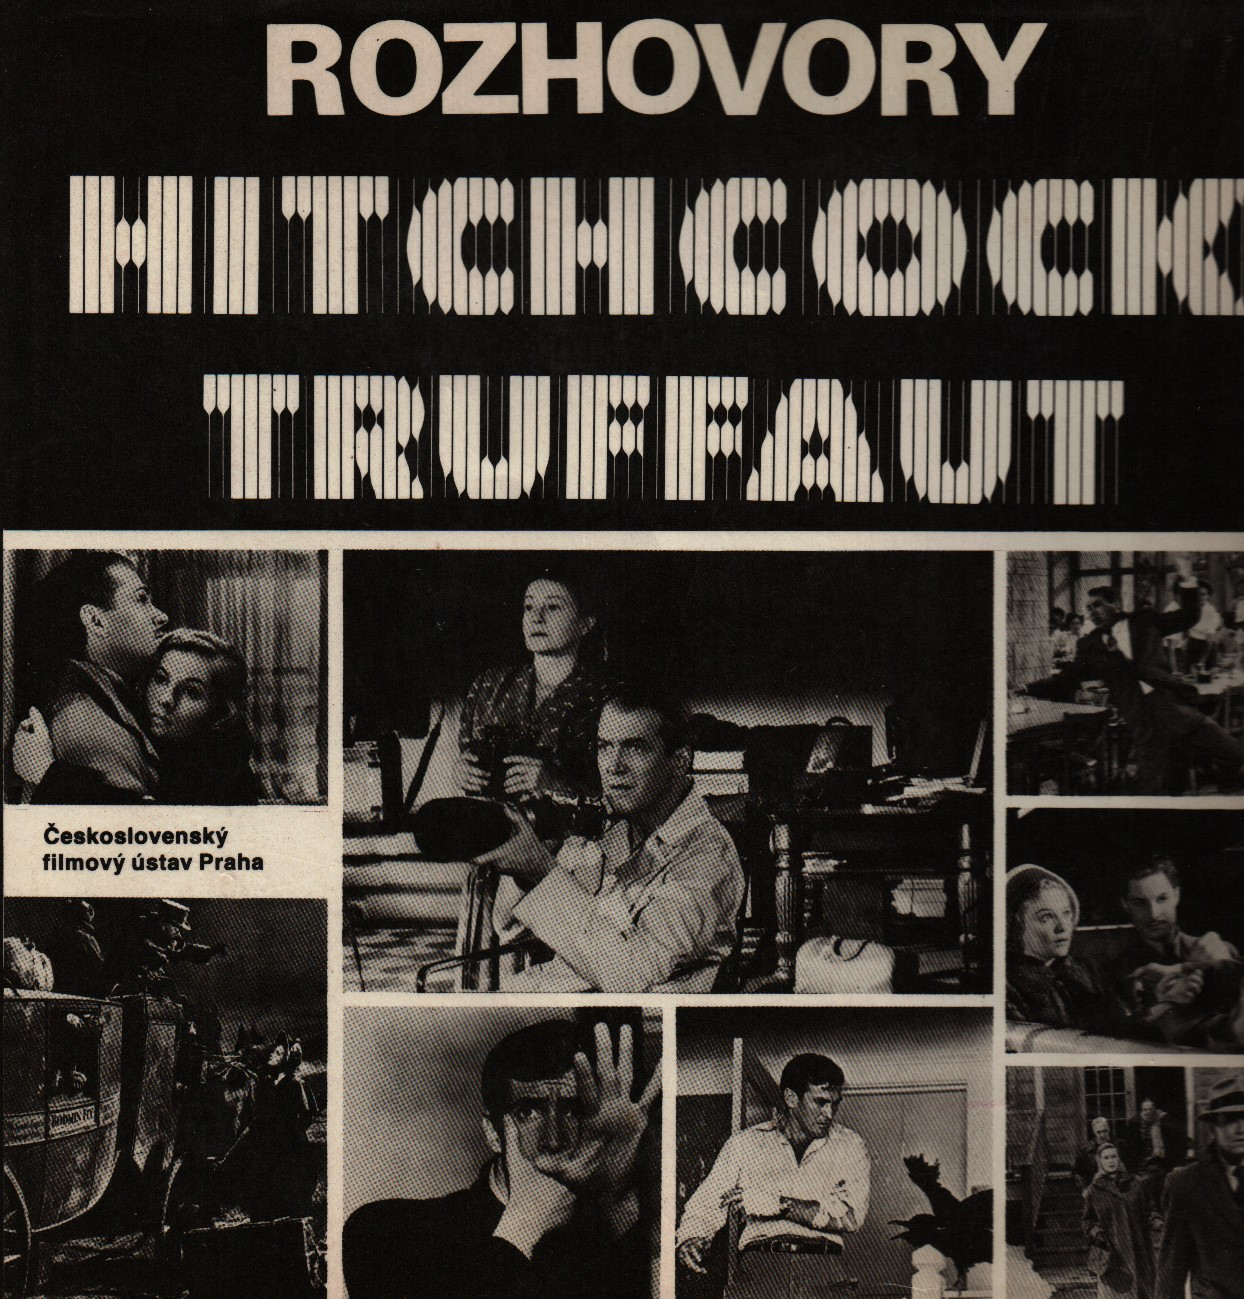 Rozhovory Hitchcock - Truffaut